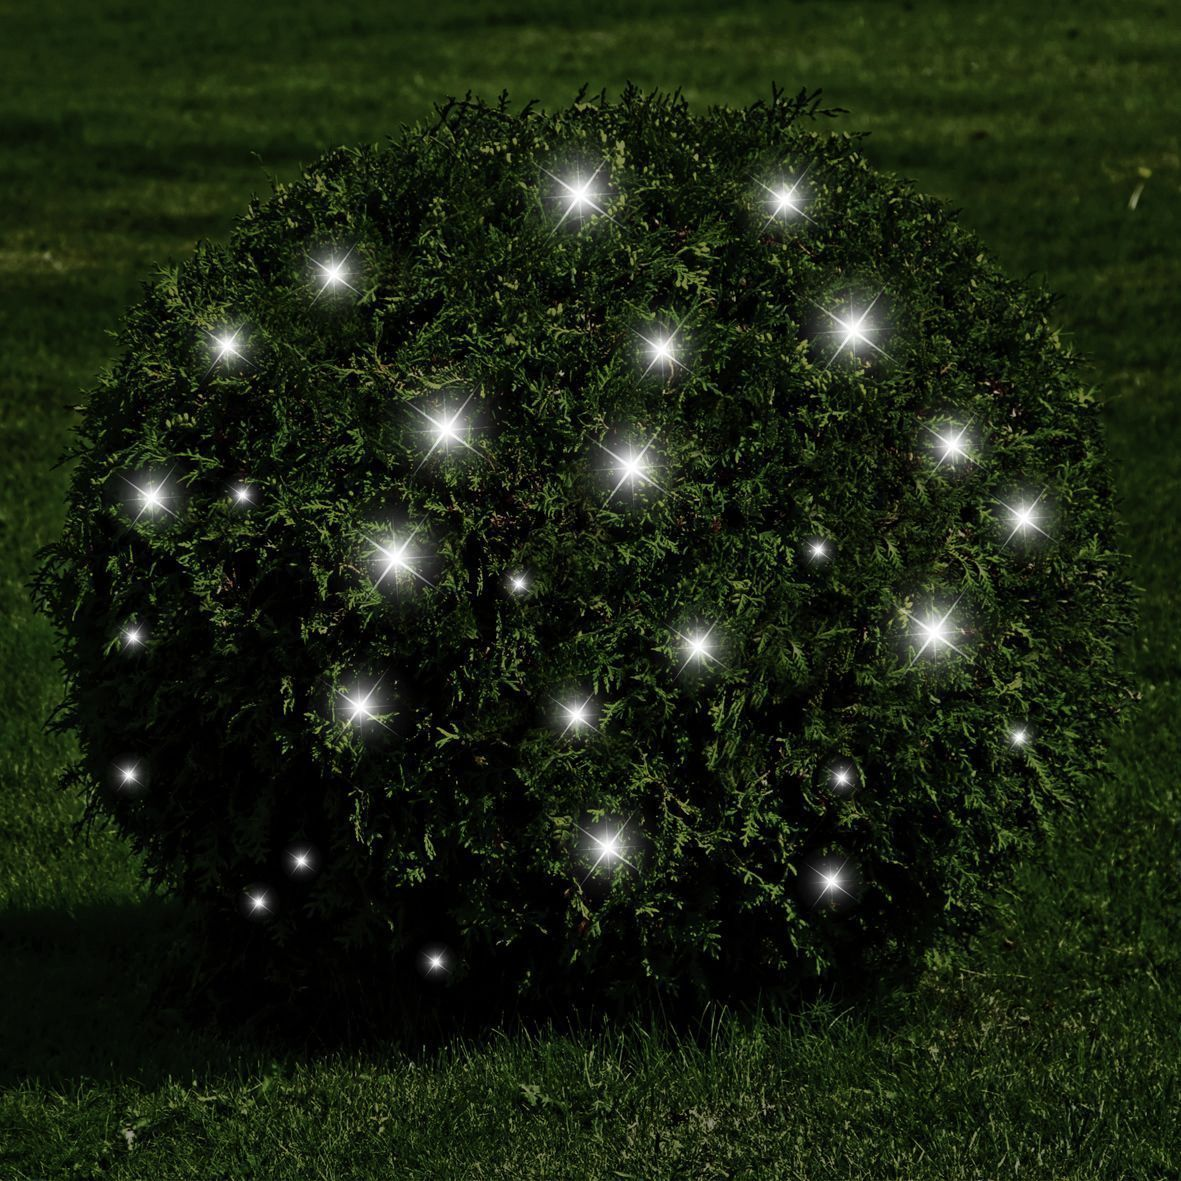 Pin on Garden Illumination